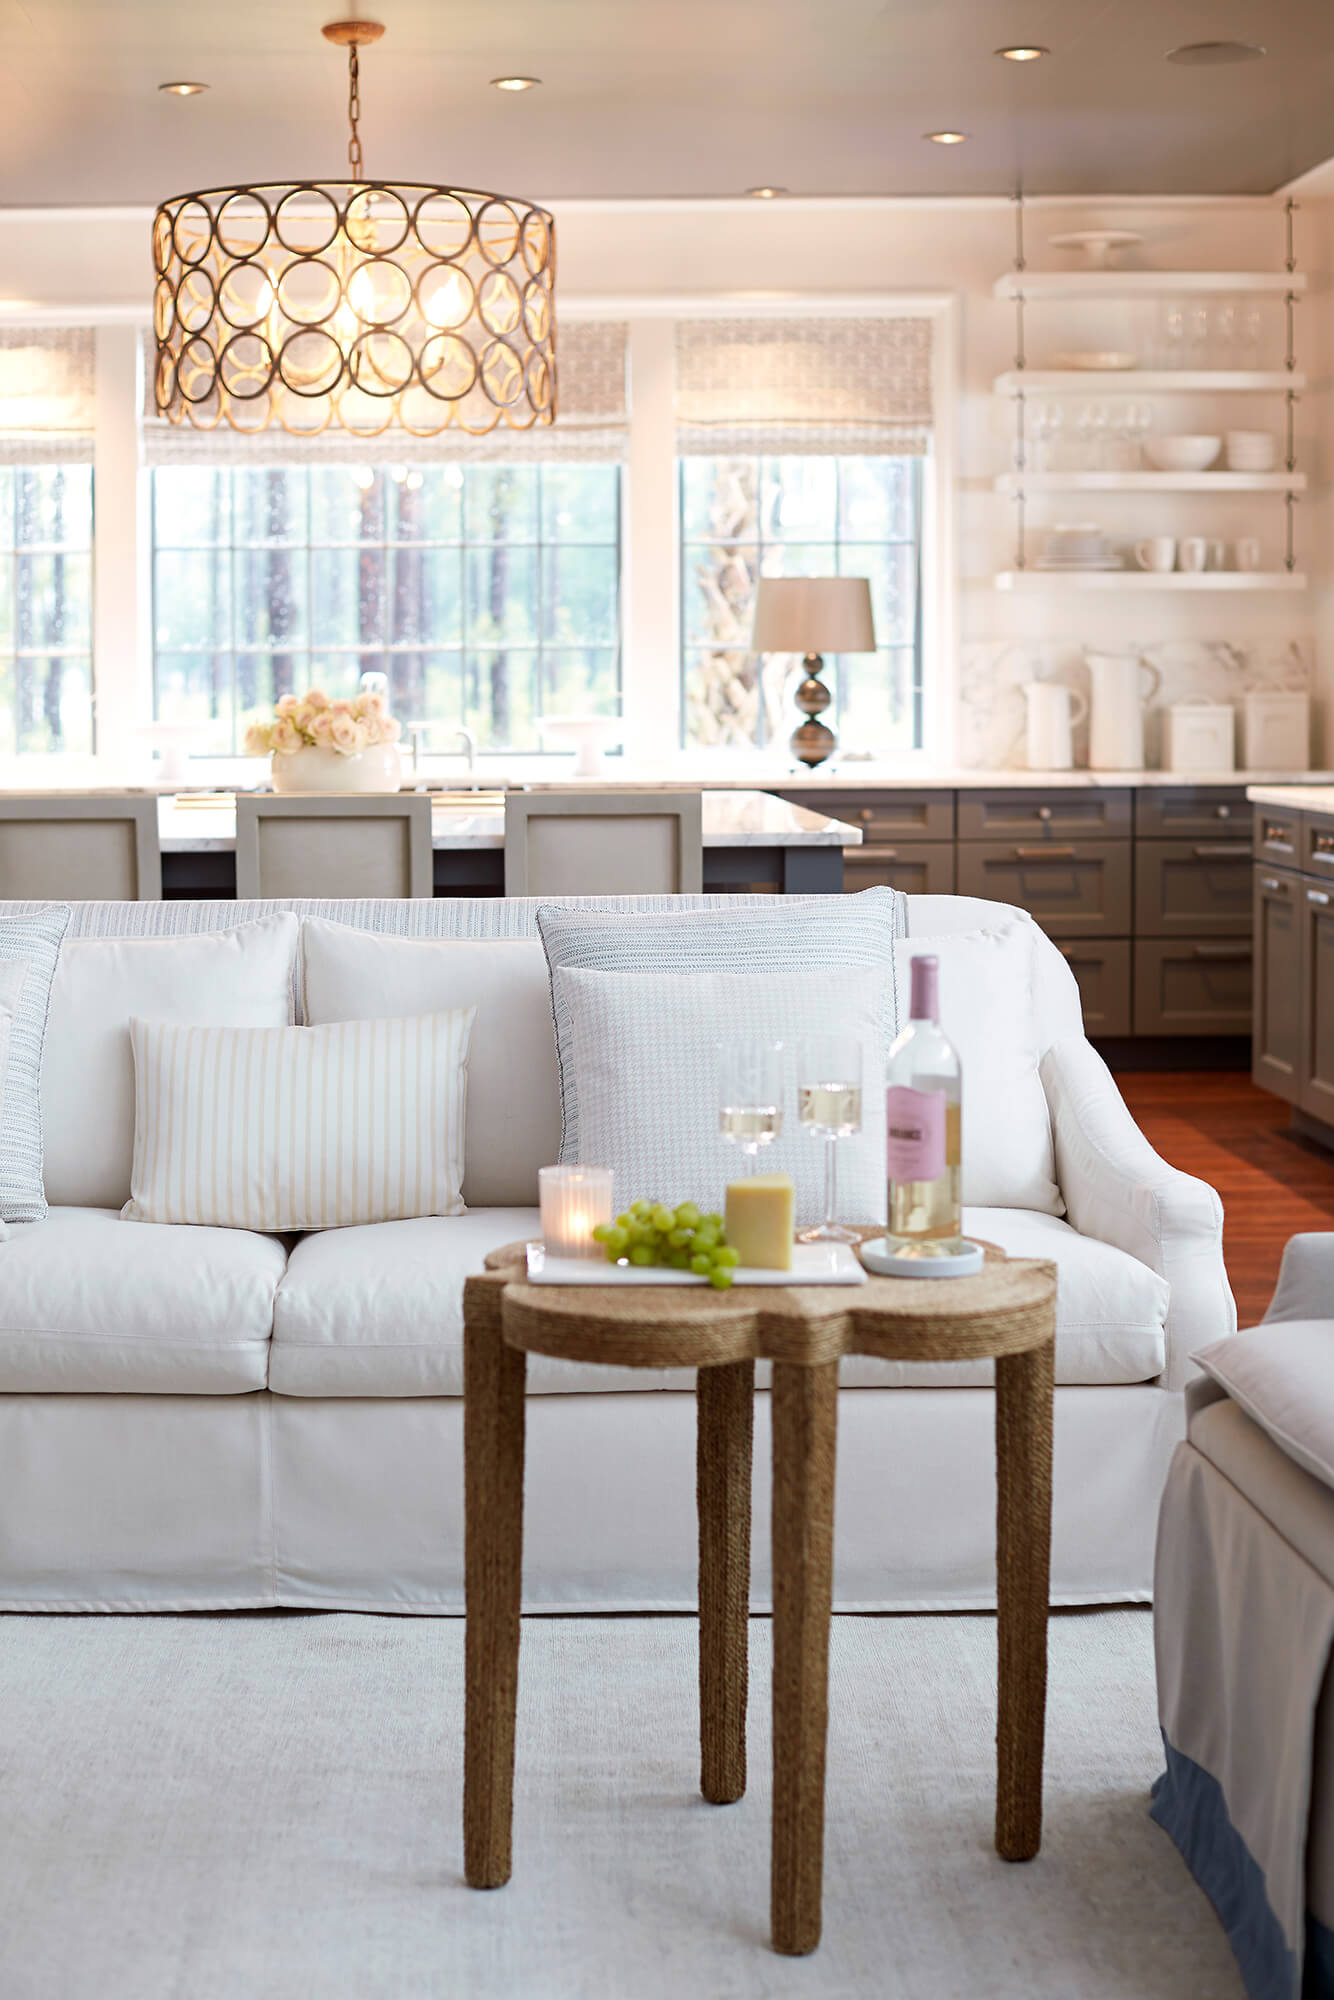 ... A White Sofa Upholstered In Sunbrella Fabrics Is Accented With Throw  Pillows Of Textured Neutral Hues ...